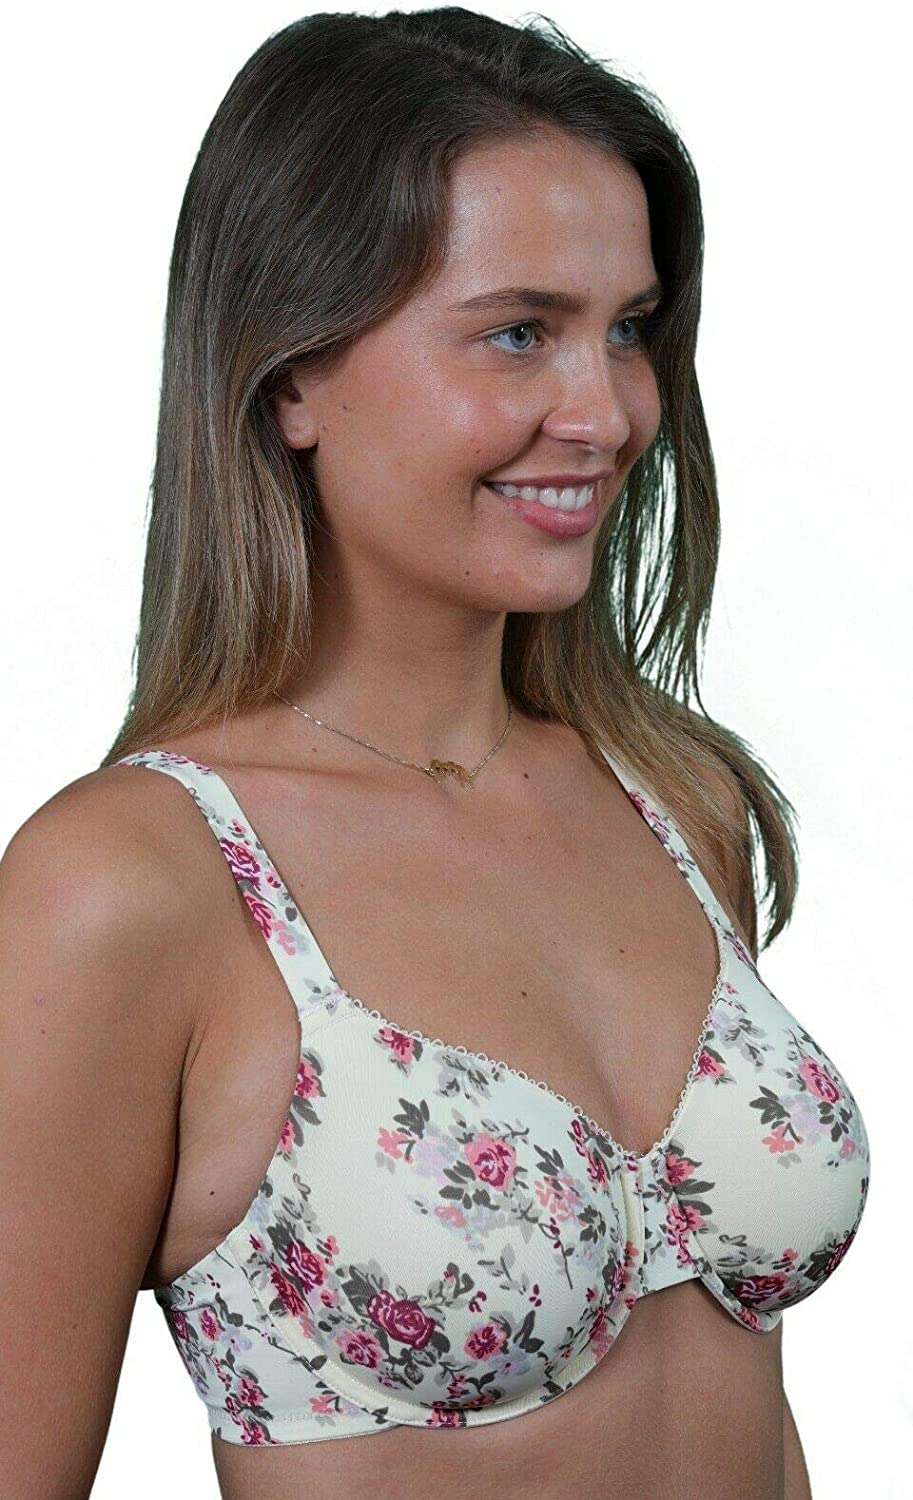 Orchid Minimiser Bra for Women Plus Size Underwired Large Bust Full Cup 40E